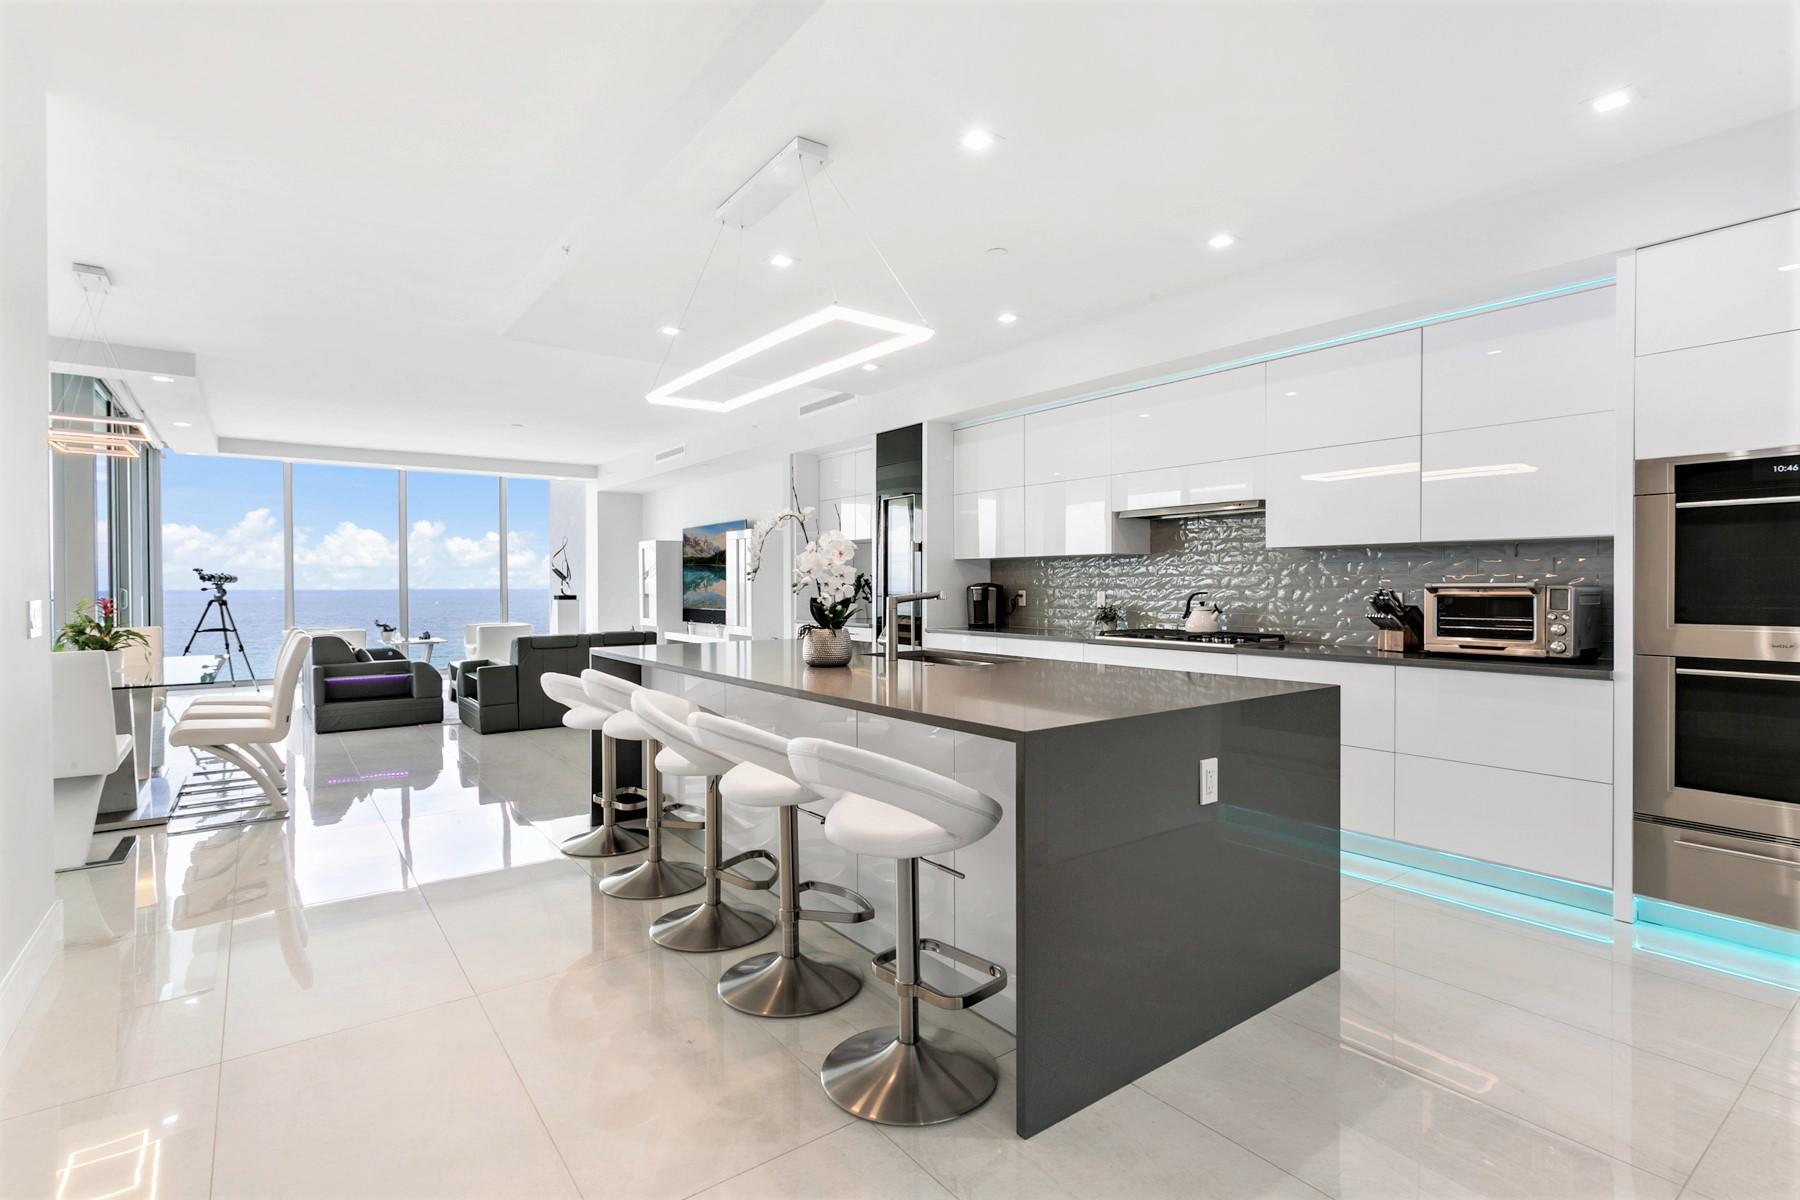 Live in the most luxurious boutique oceanfront building on Singer Island. No expenses were spared to upgrade the interior with high end finishes. The kitchen features solid wood, high gloss laminate finish cabinets with Electronic Auto Touch mechanism. Kitchen, baths and laundry room feature slate colored quartz counters to compliment the white cabinetry. All closets and the extra large pantry were upgraded with custom built-in cabinetry. Remote control window shades by California Design were installed throughout the condo. The game and family room can be accessed through a glass barn door and features a short throw projection TV with Sonos surround entertainment system. The Control 4 Smart Home System allows you to adjust music, ac, window shades and more from your mobile phone. Modern lighting/chandeliers and new LED recessed lighting have been installed throughout. Furniture was designed by Zuri and Sofa Dreams; some pieces will be exchanged. Furniture is negotiable. The kitchen is still waiting on finishing touches, as well as the Master Bath. Once completed there will be new photos available. Please note that the seller can close no earlier than the last week of December 2021, however, arrangements can be made for pre-closing occupancy. Showings start June 15, 2021. Taxes for 2021 have not yet been established.